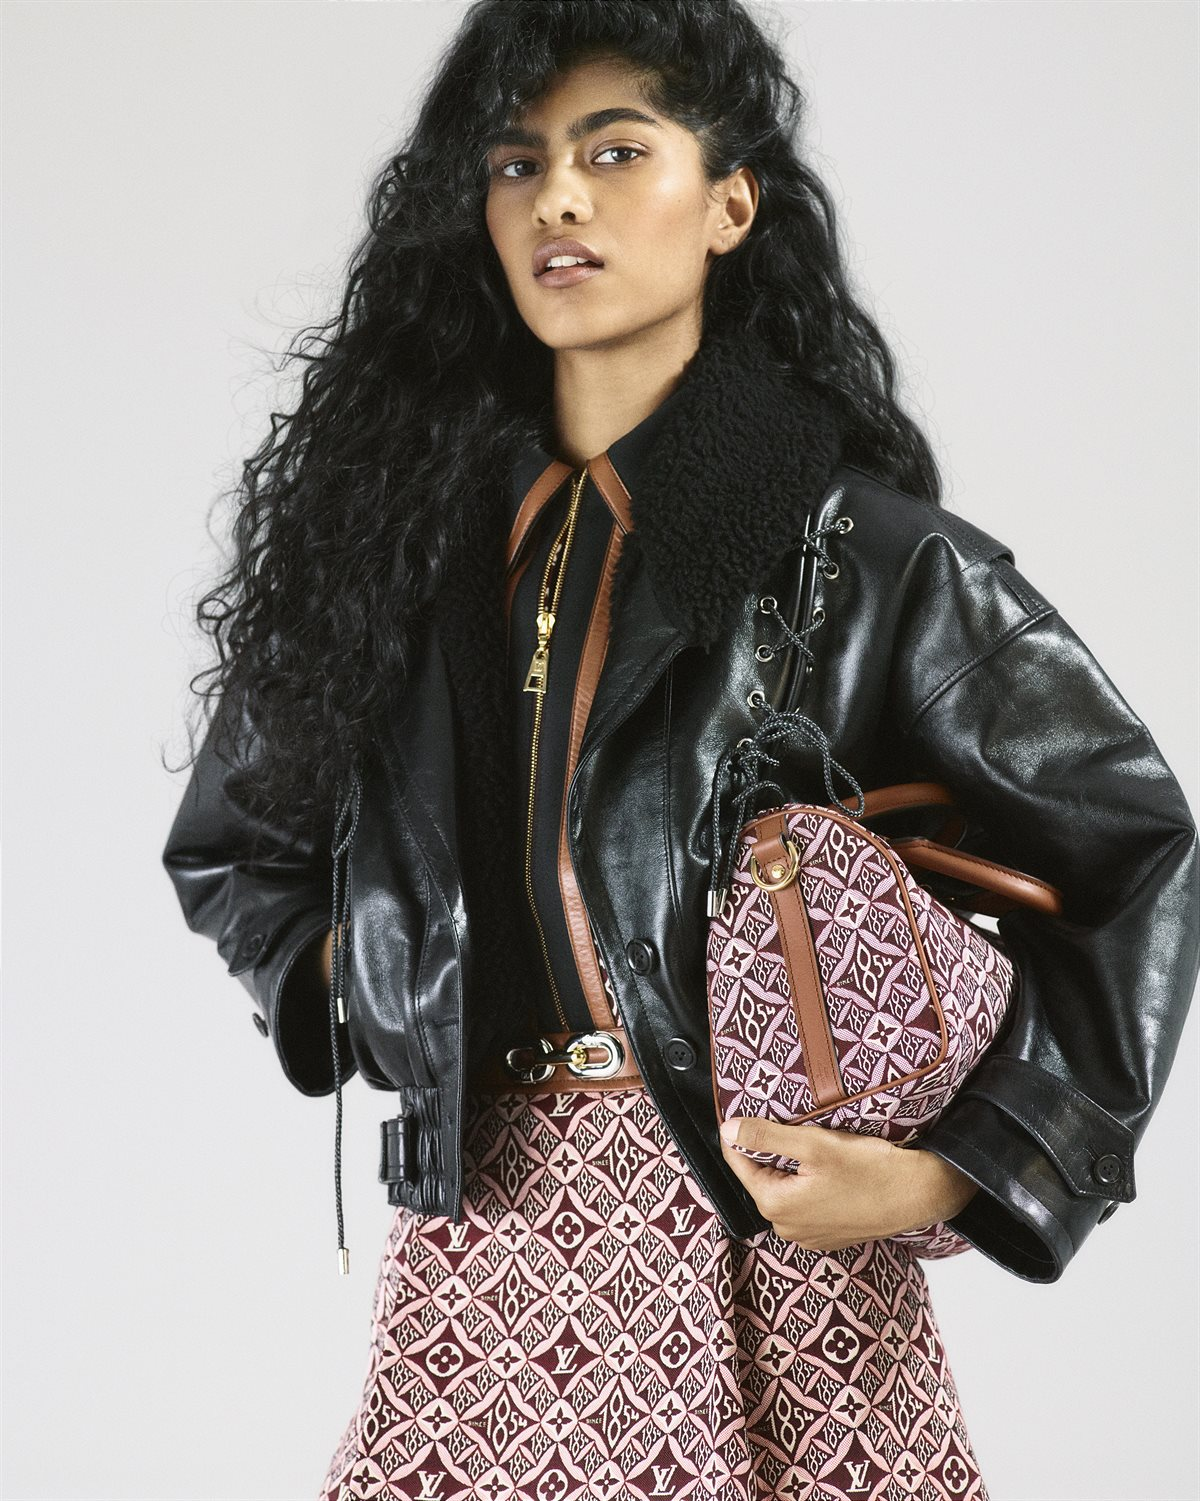 LV_Speedy Bandoulière 25 bag in SINCE 1854 jacquard textile and cowhide leather 2